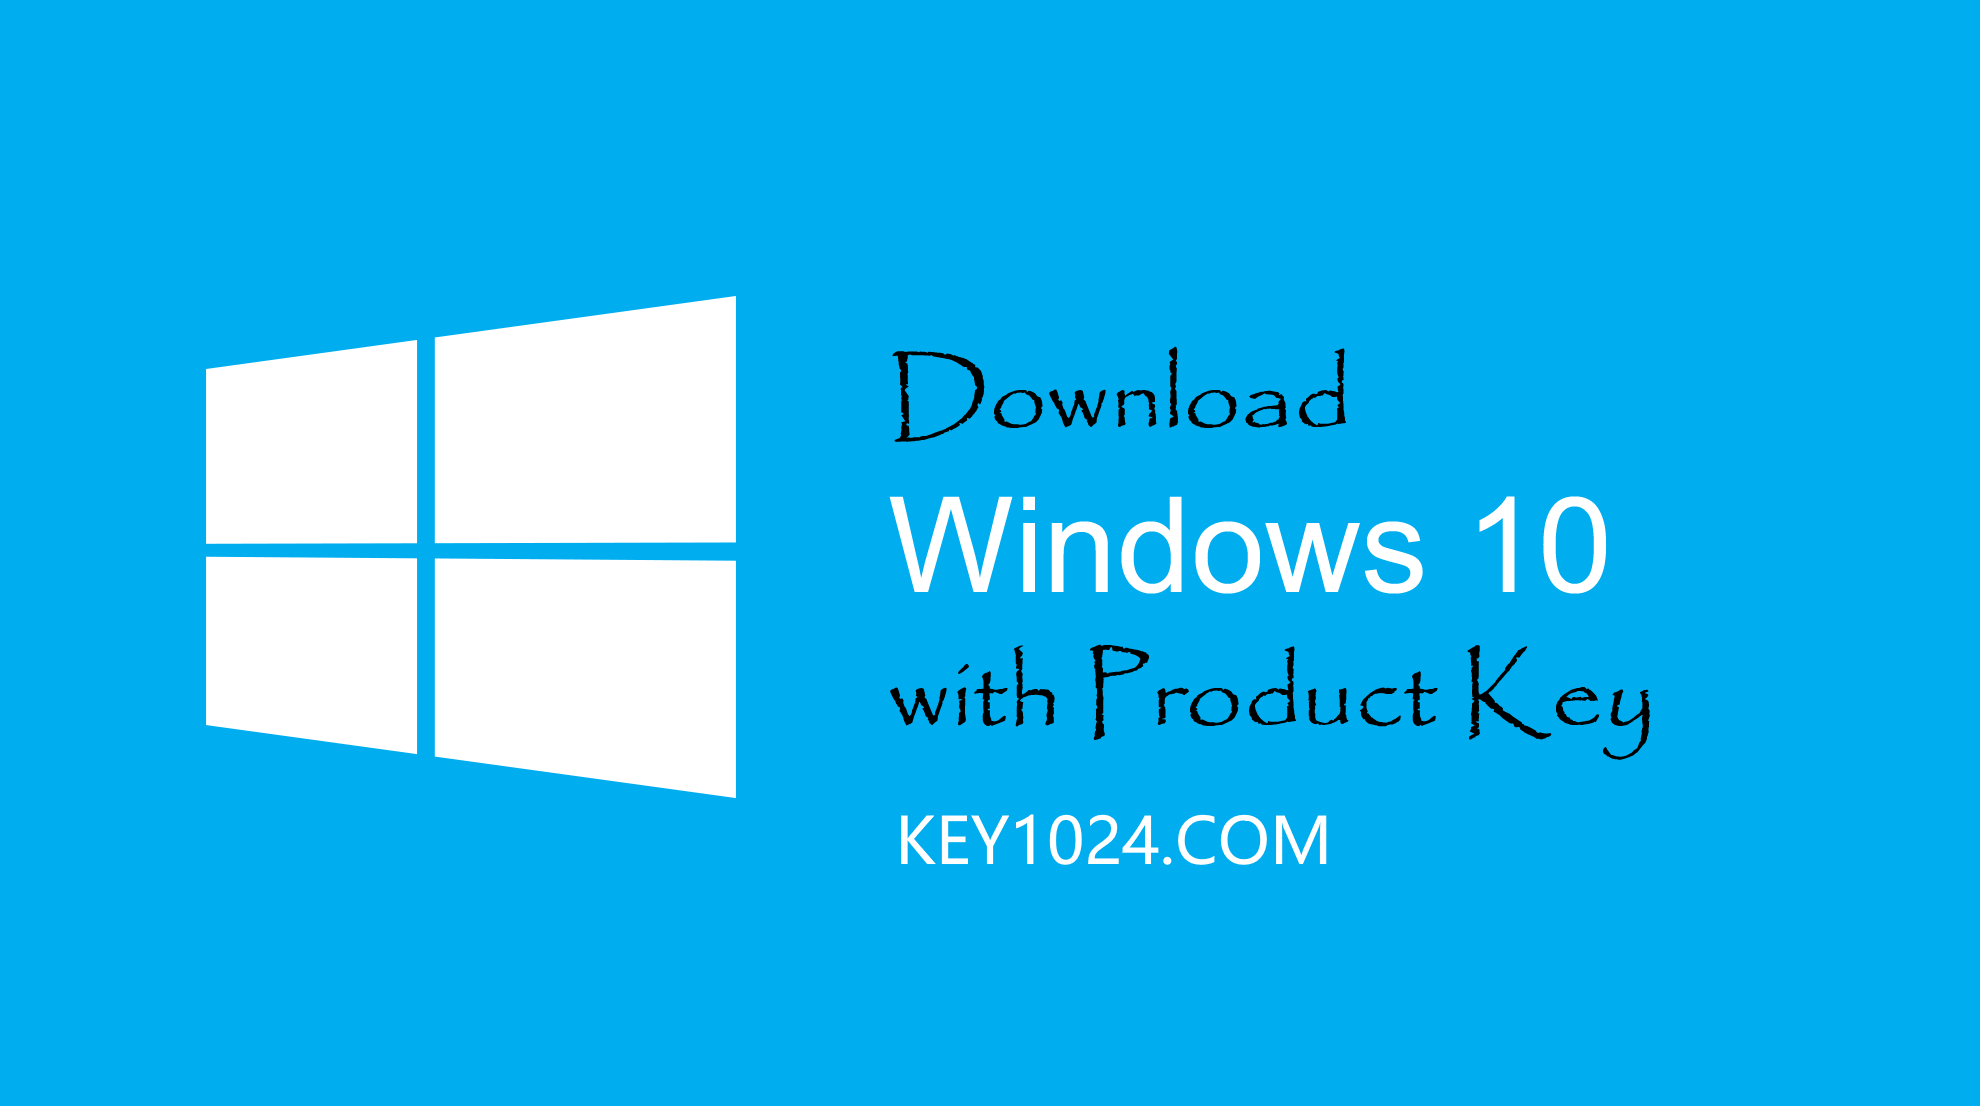 Windows 10 Professional Product Keys 2018 + Permanent Activation Method